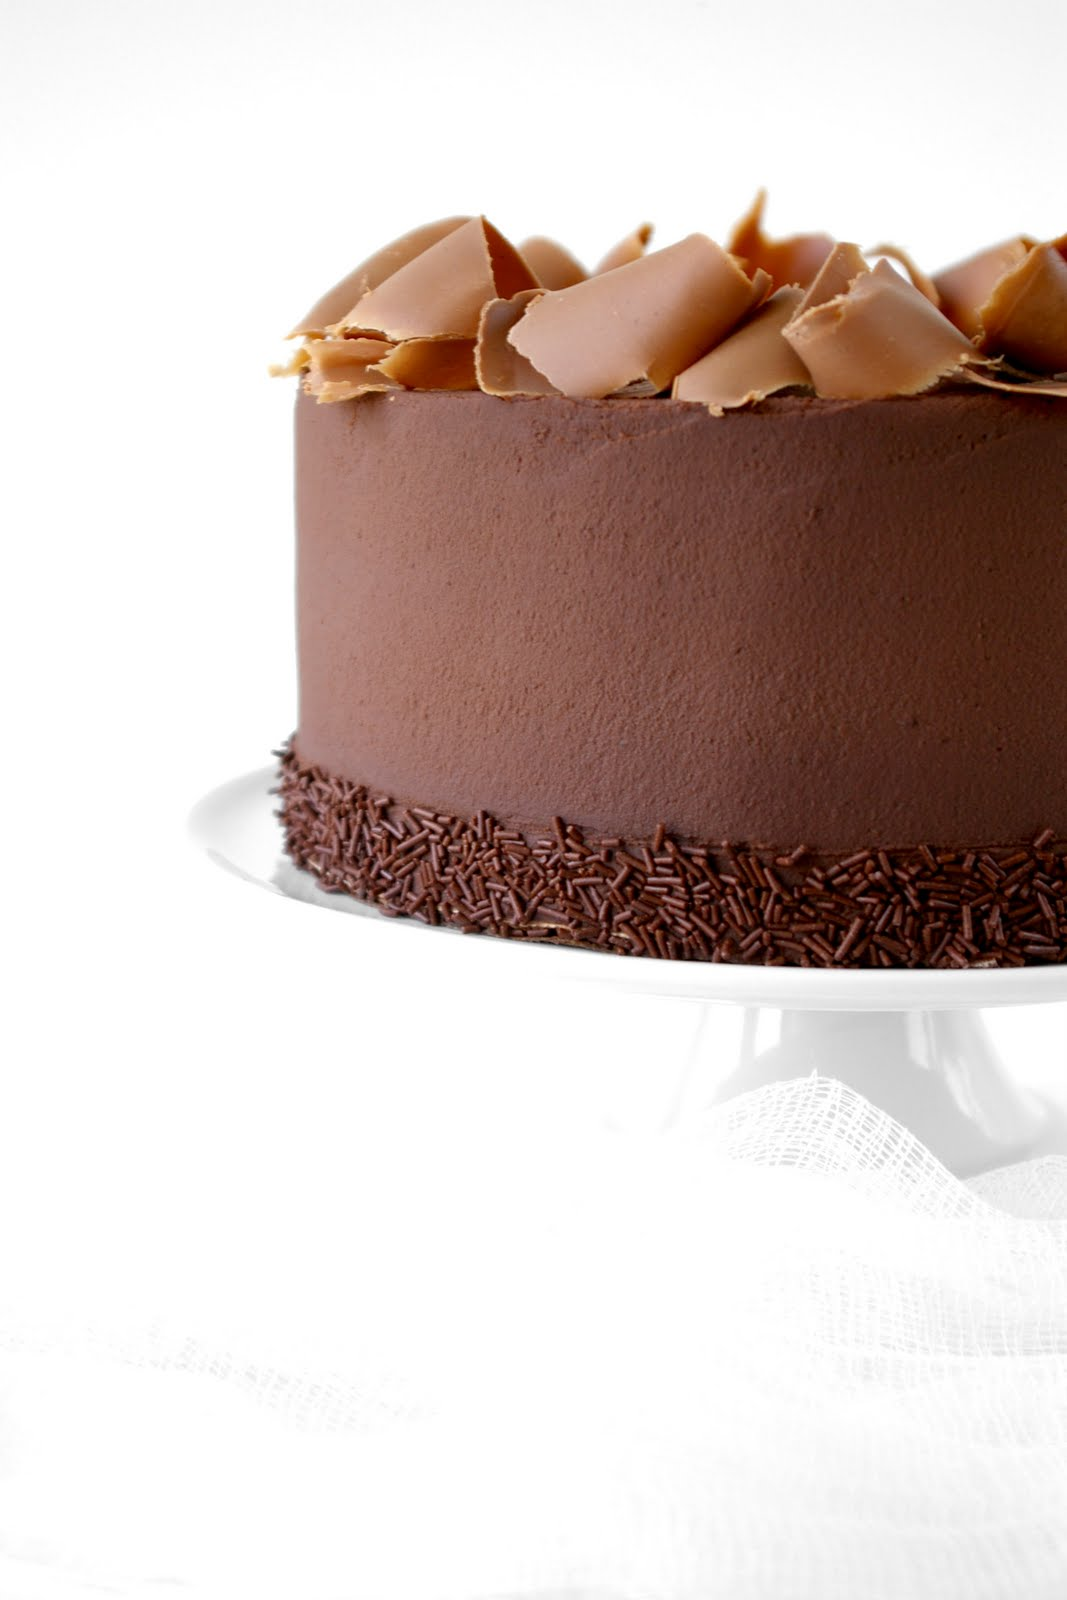 ... torte with chocolate cognac mousse chocolate ganache chocolate ganache